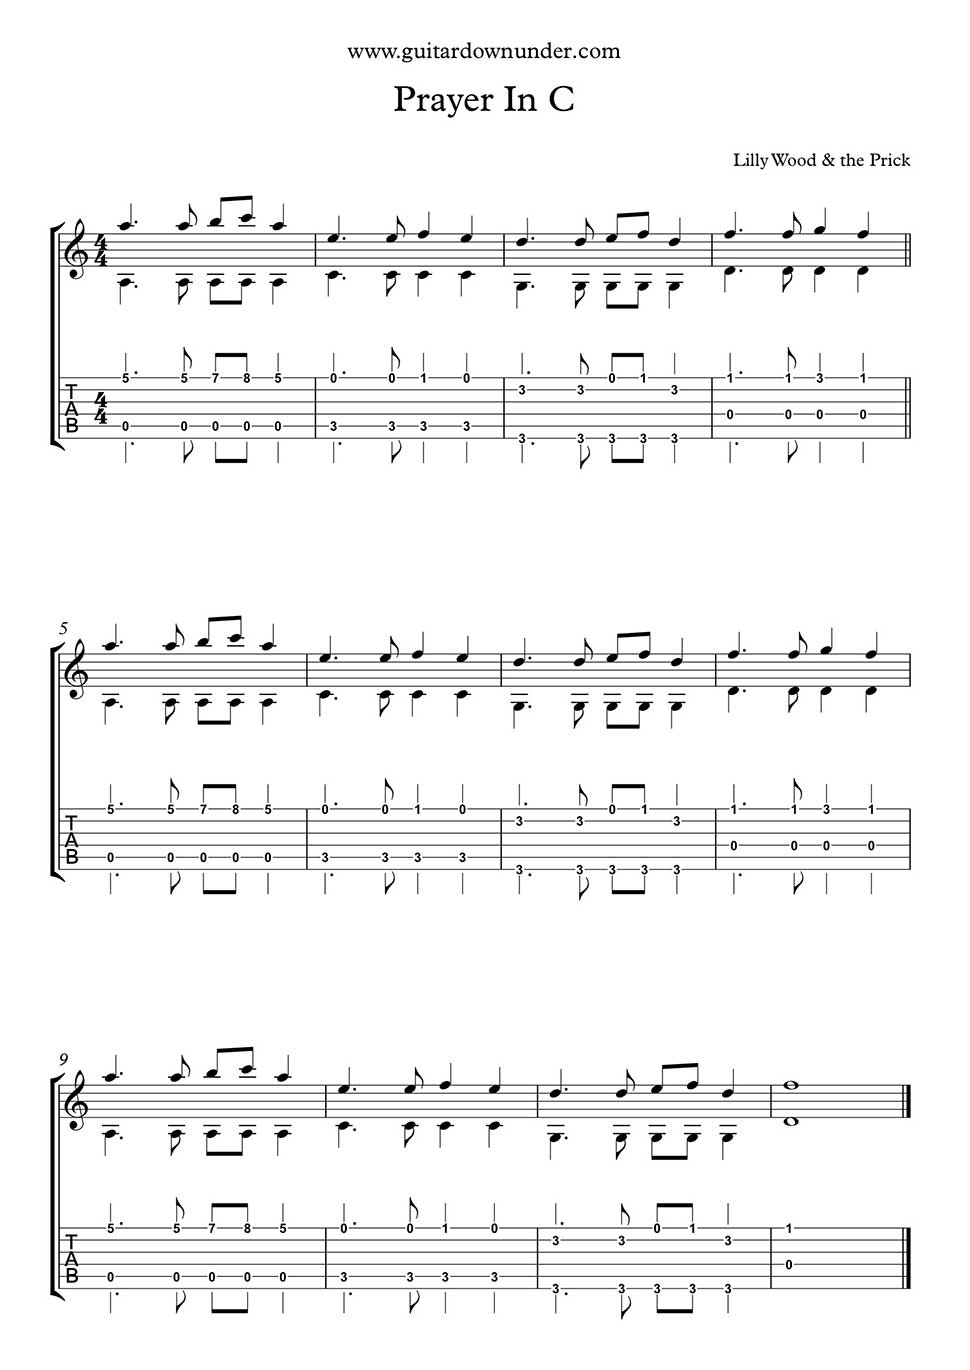 Prayer In C By Lilly Wood The Prick Fingerstyle Guitar Part